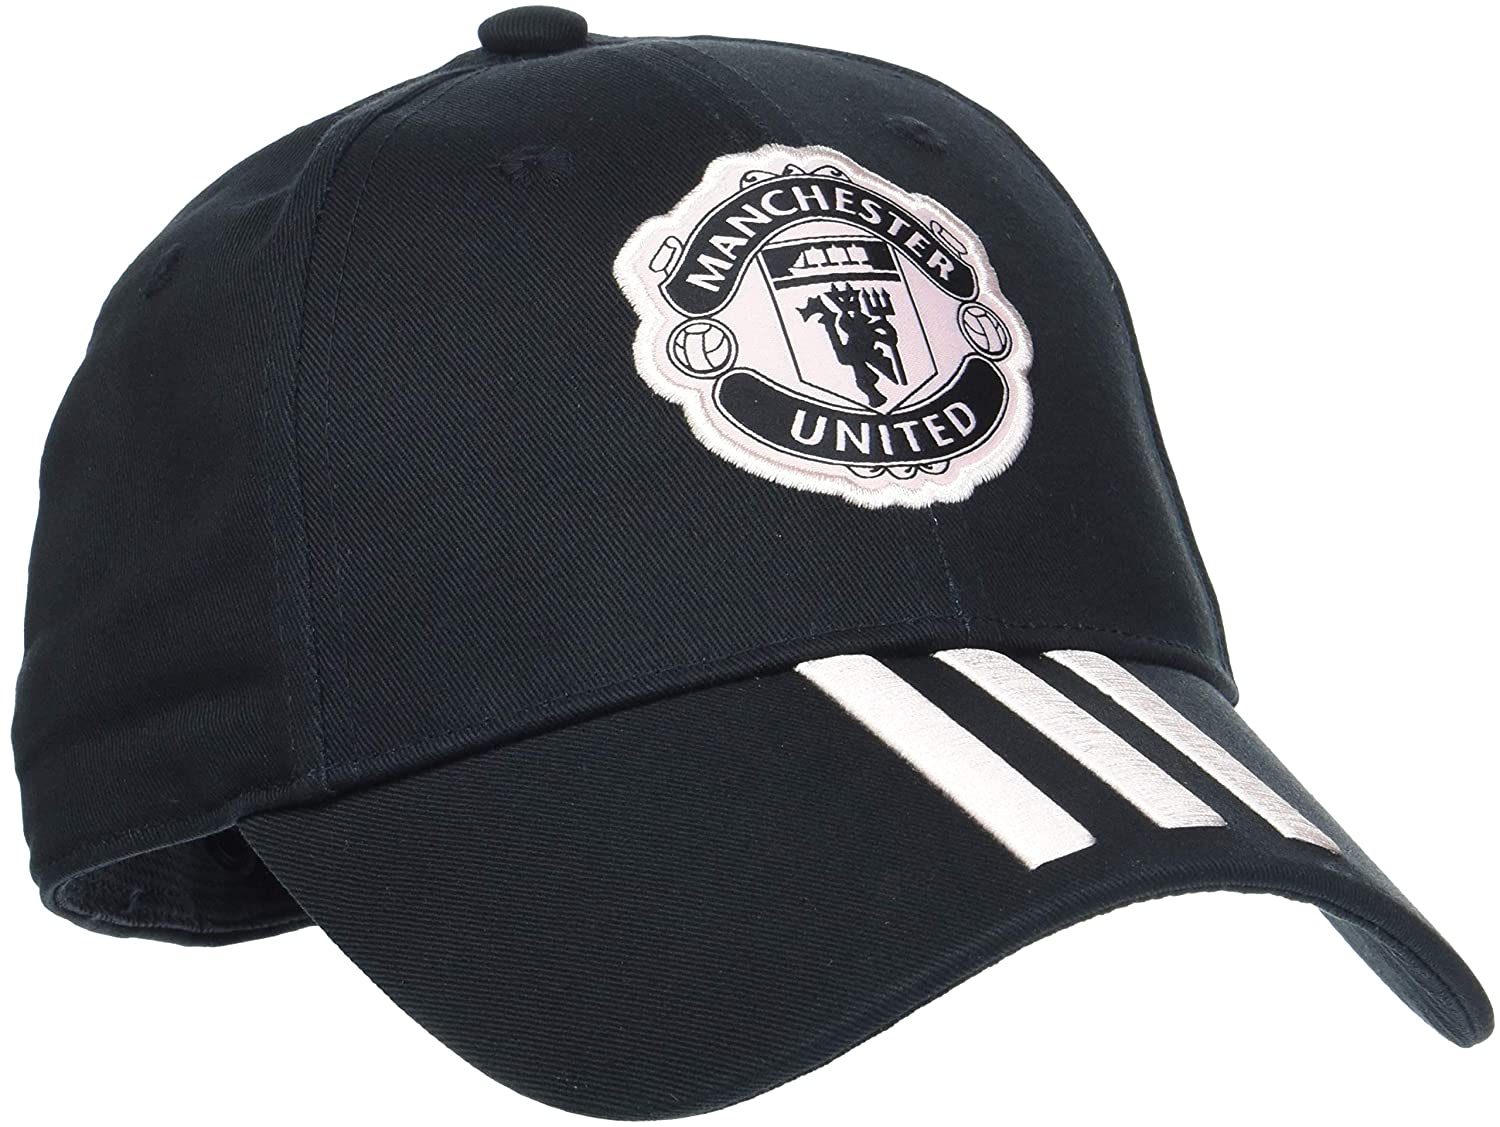 772d8946a adidas Manchester United FC 3 Stripes Cap, Unisex, CY5585: Amazon.co ...